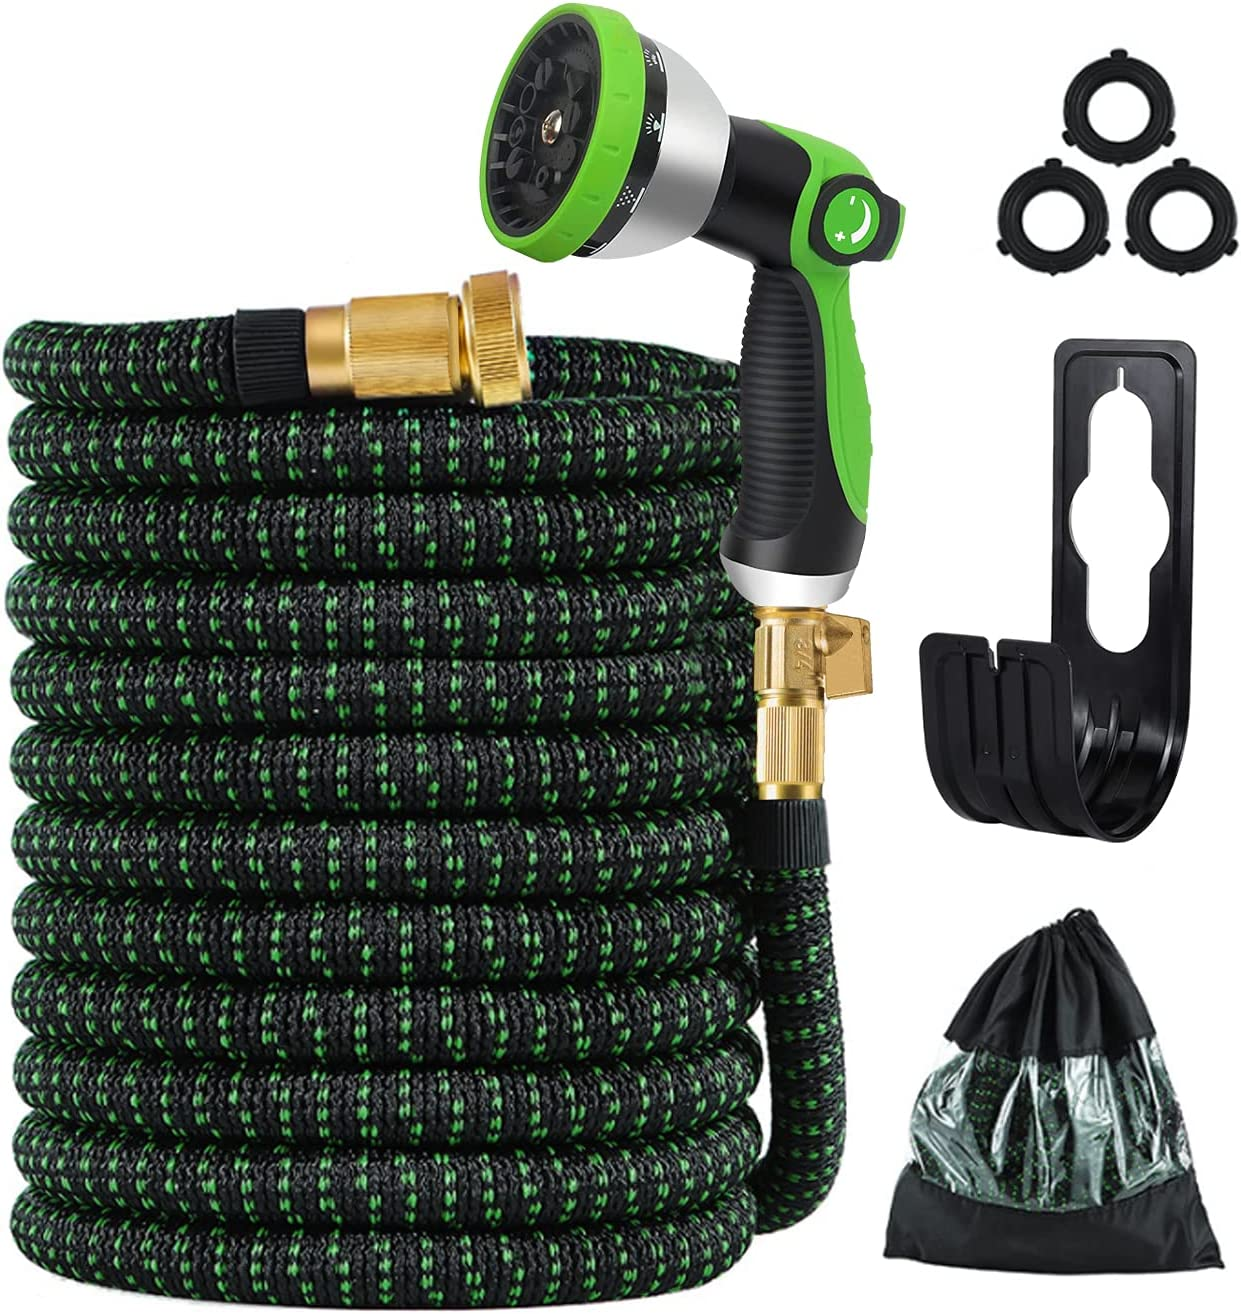 SURFLINE Garden Hose 50ft, Water Hose Expandable Garden Hose with 10 Function Spray Nozzle, 3750D Fabric No-kink Hose,3-Layers of Latex 3/4